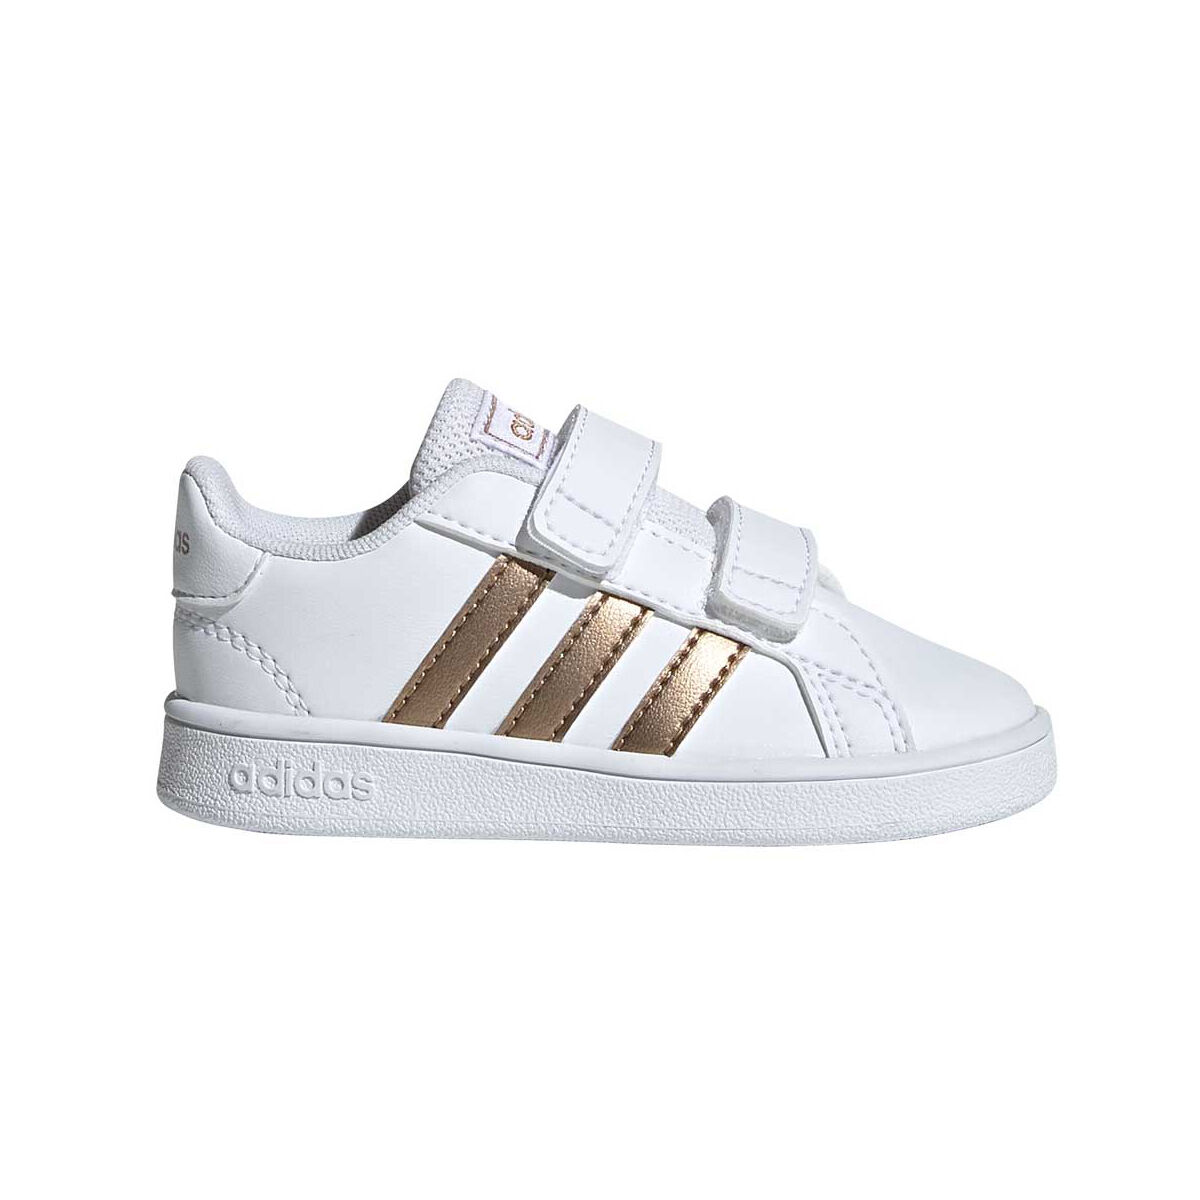 adidas Grand Court Kids Toddler Shoes